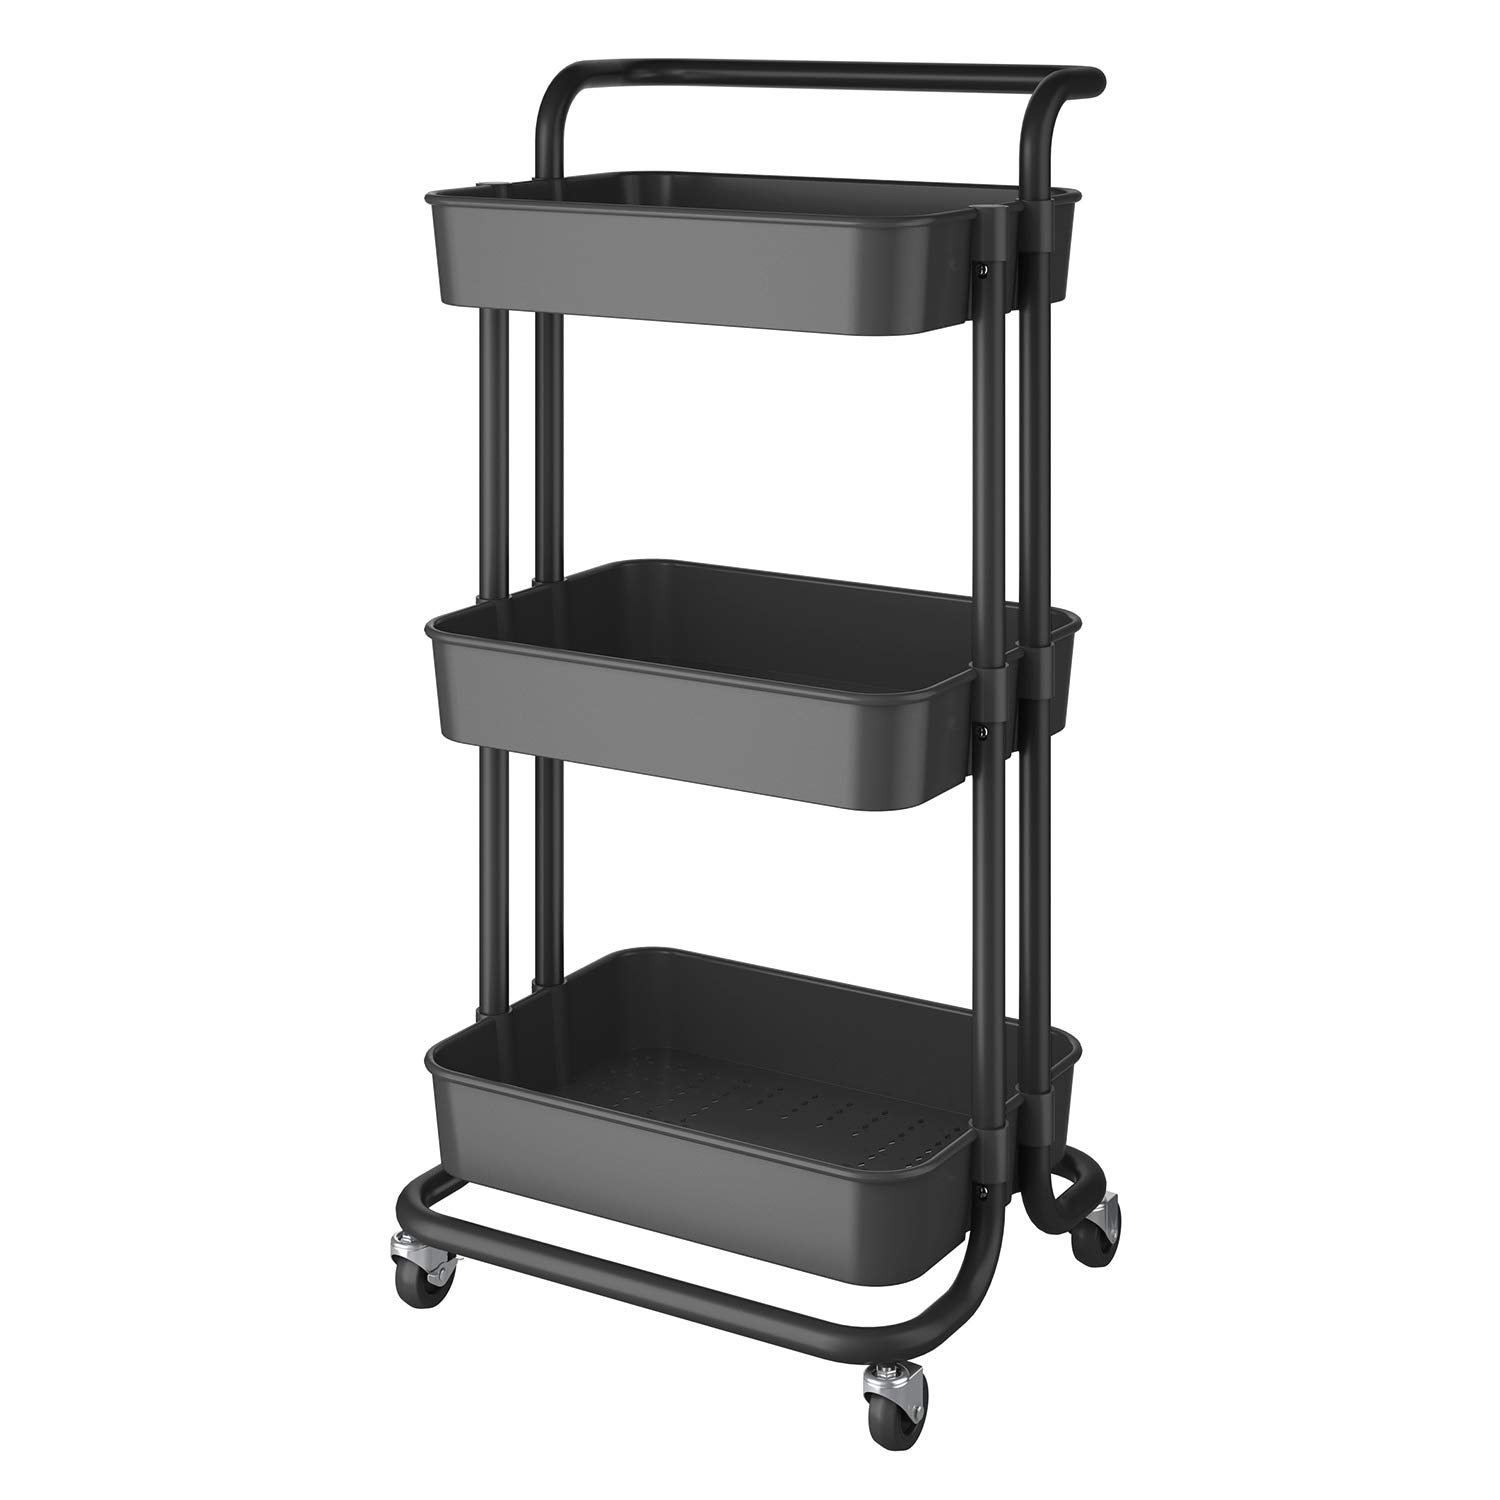 Finther 3-Tier Rolling Cart Storage Cart with Utility Handle Organizer Cart with Caster Wheels Utility Cart Rolling for Bathroom, Kitchen, Office Bedroom